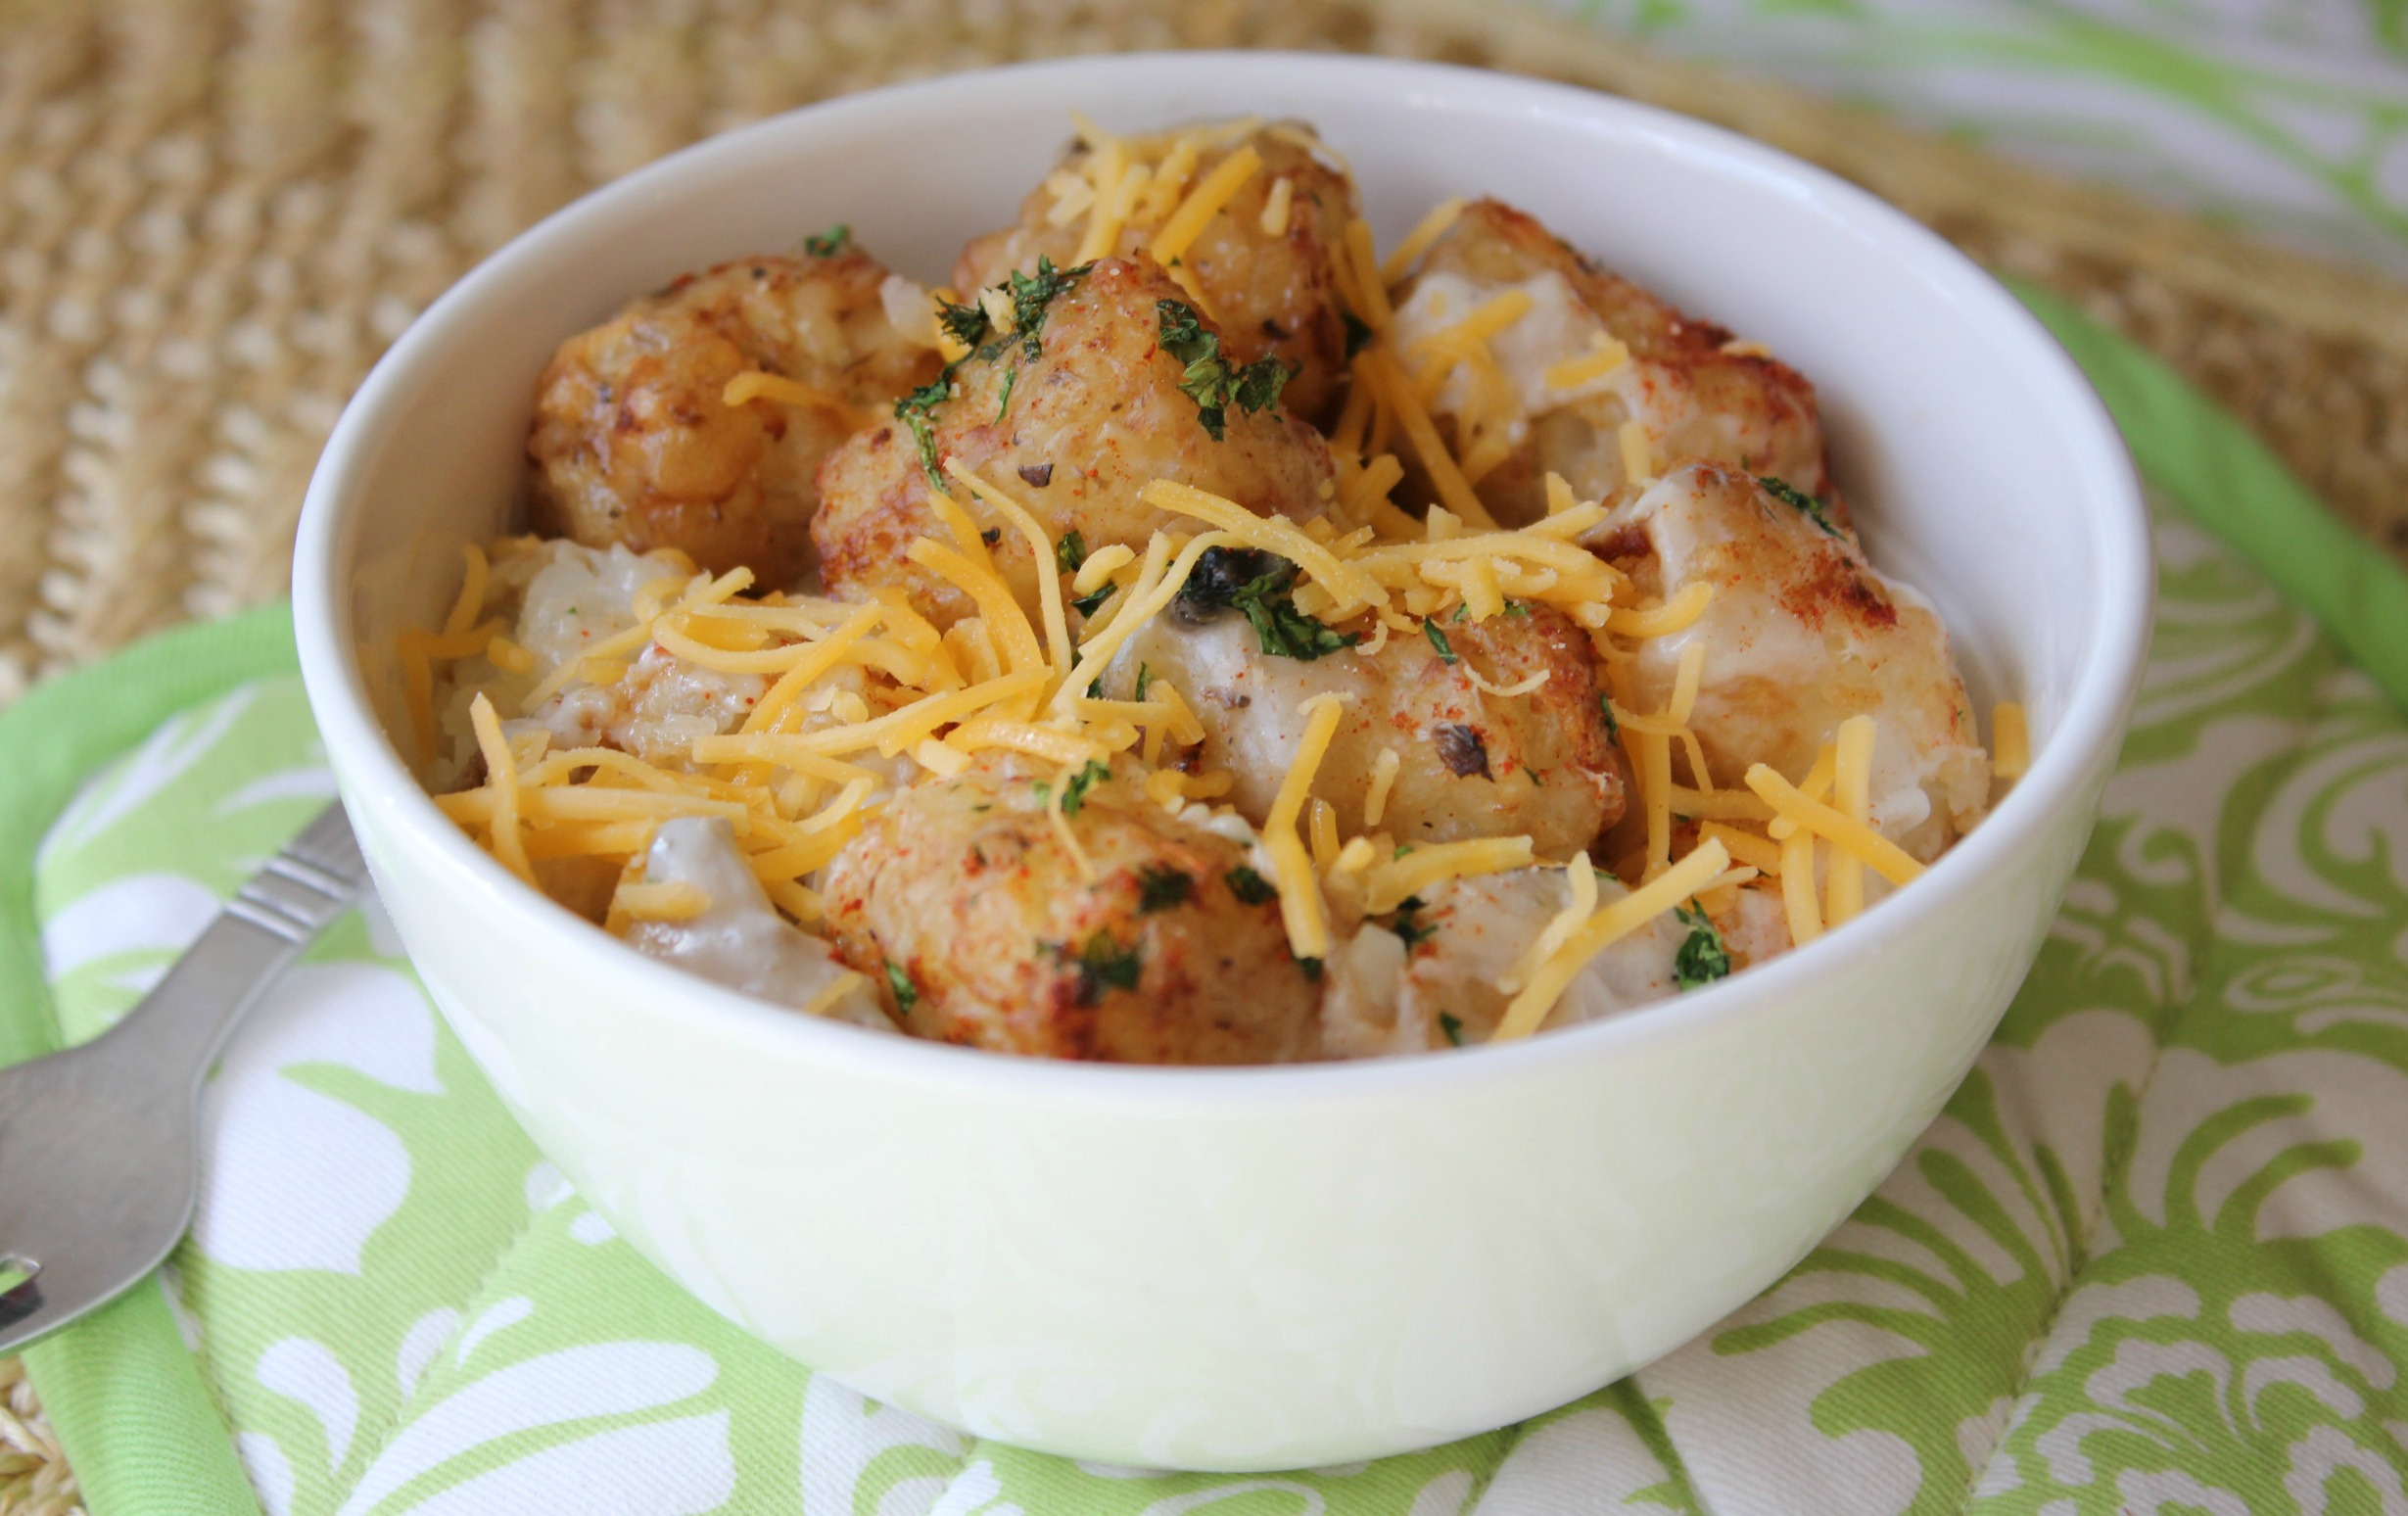 Easy Tater Tot Casserole | Simply Being Mommy